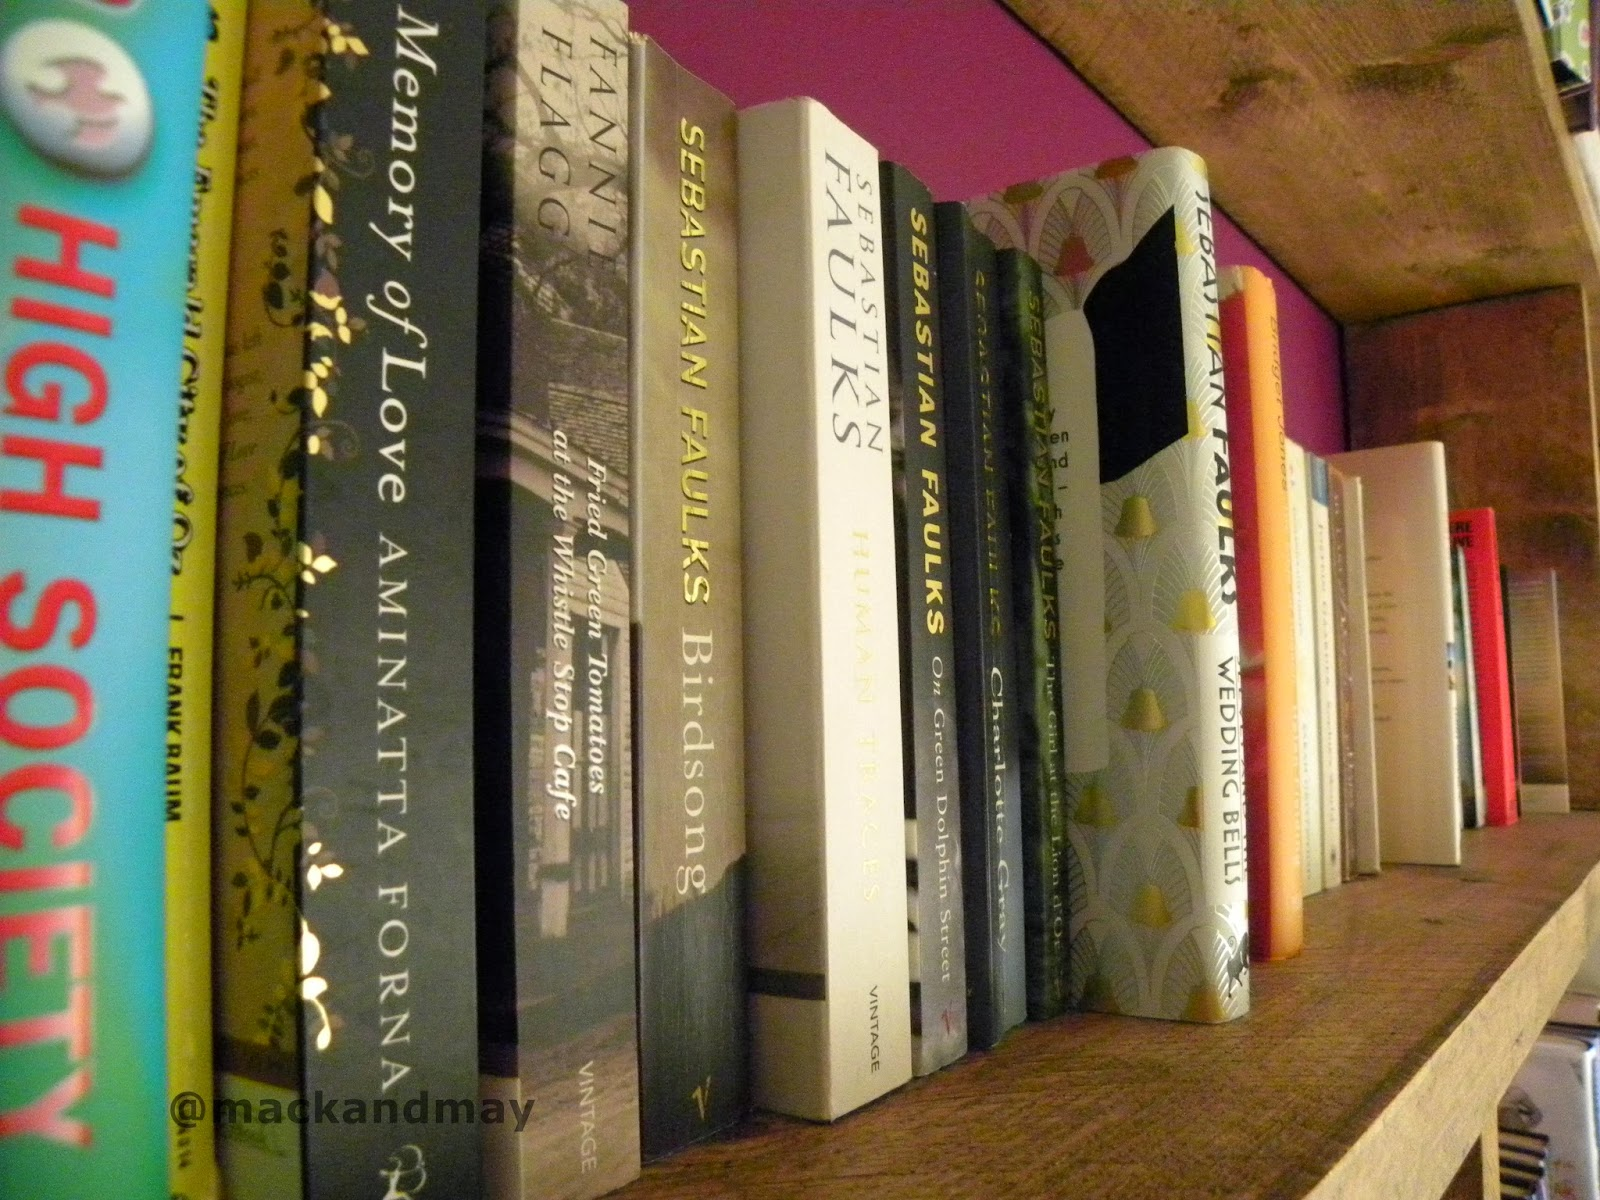 photo of bookshelf and books